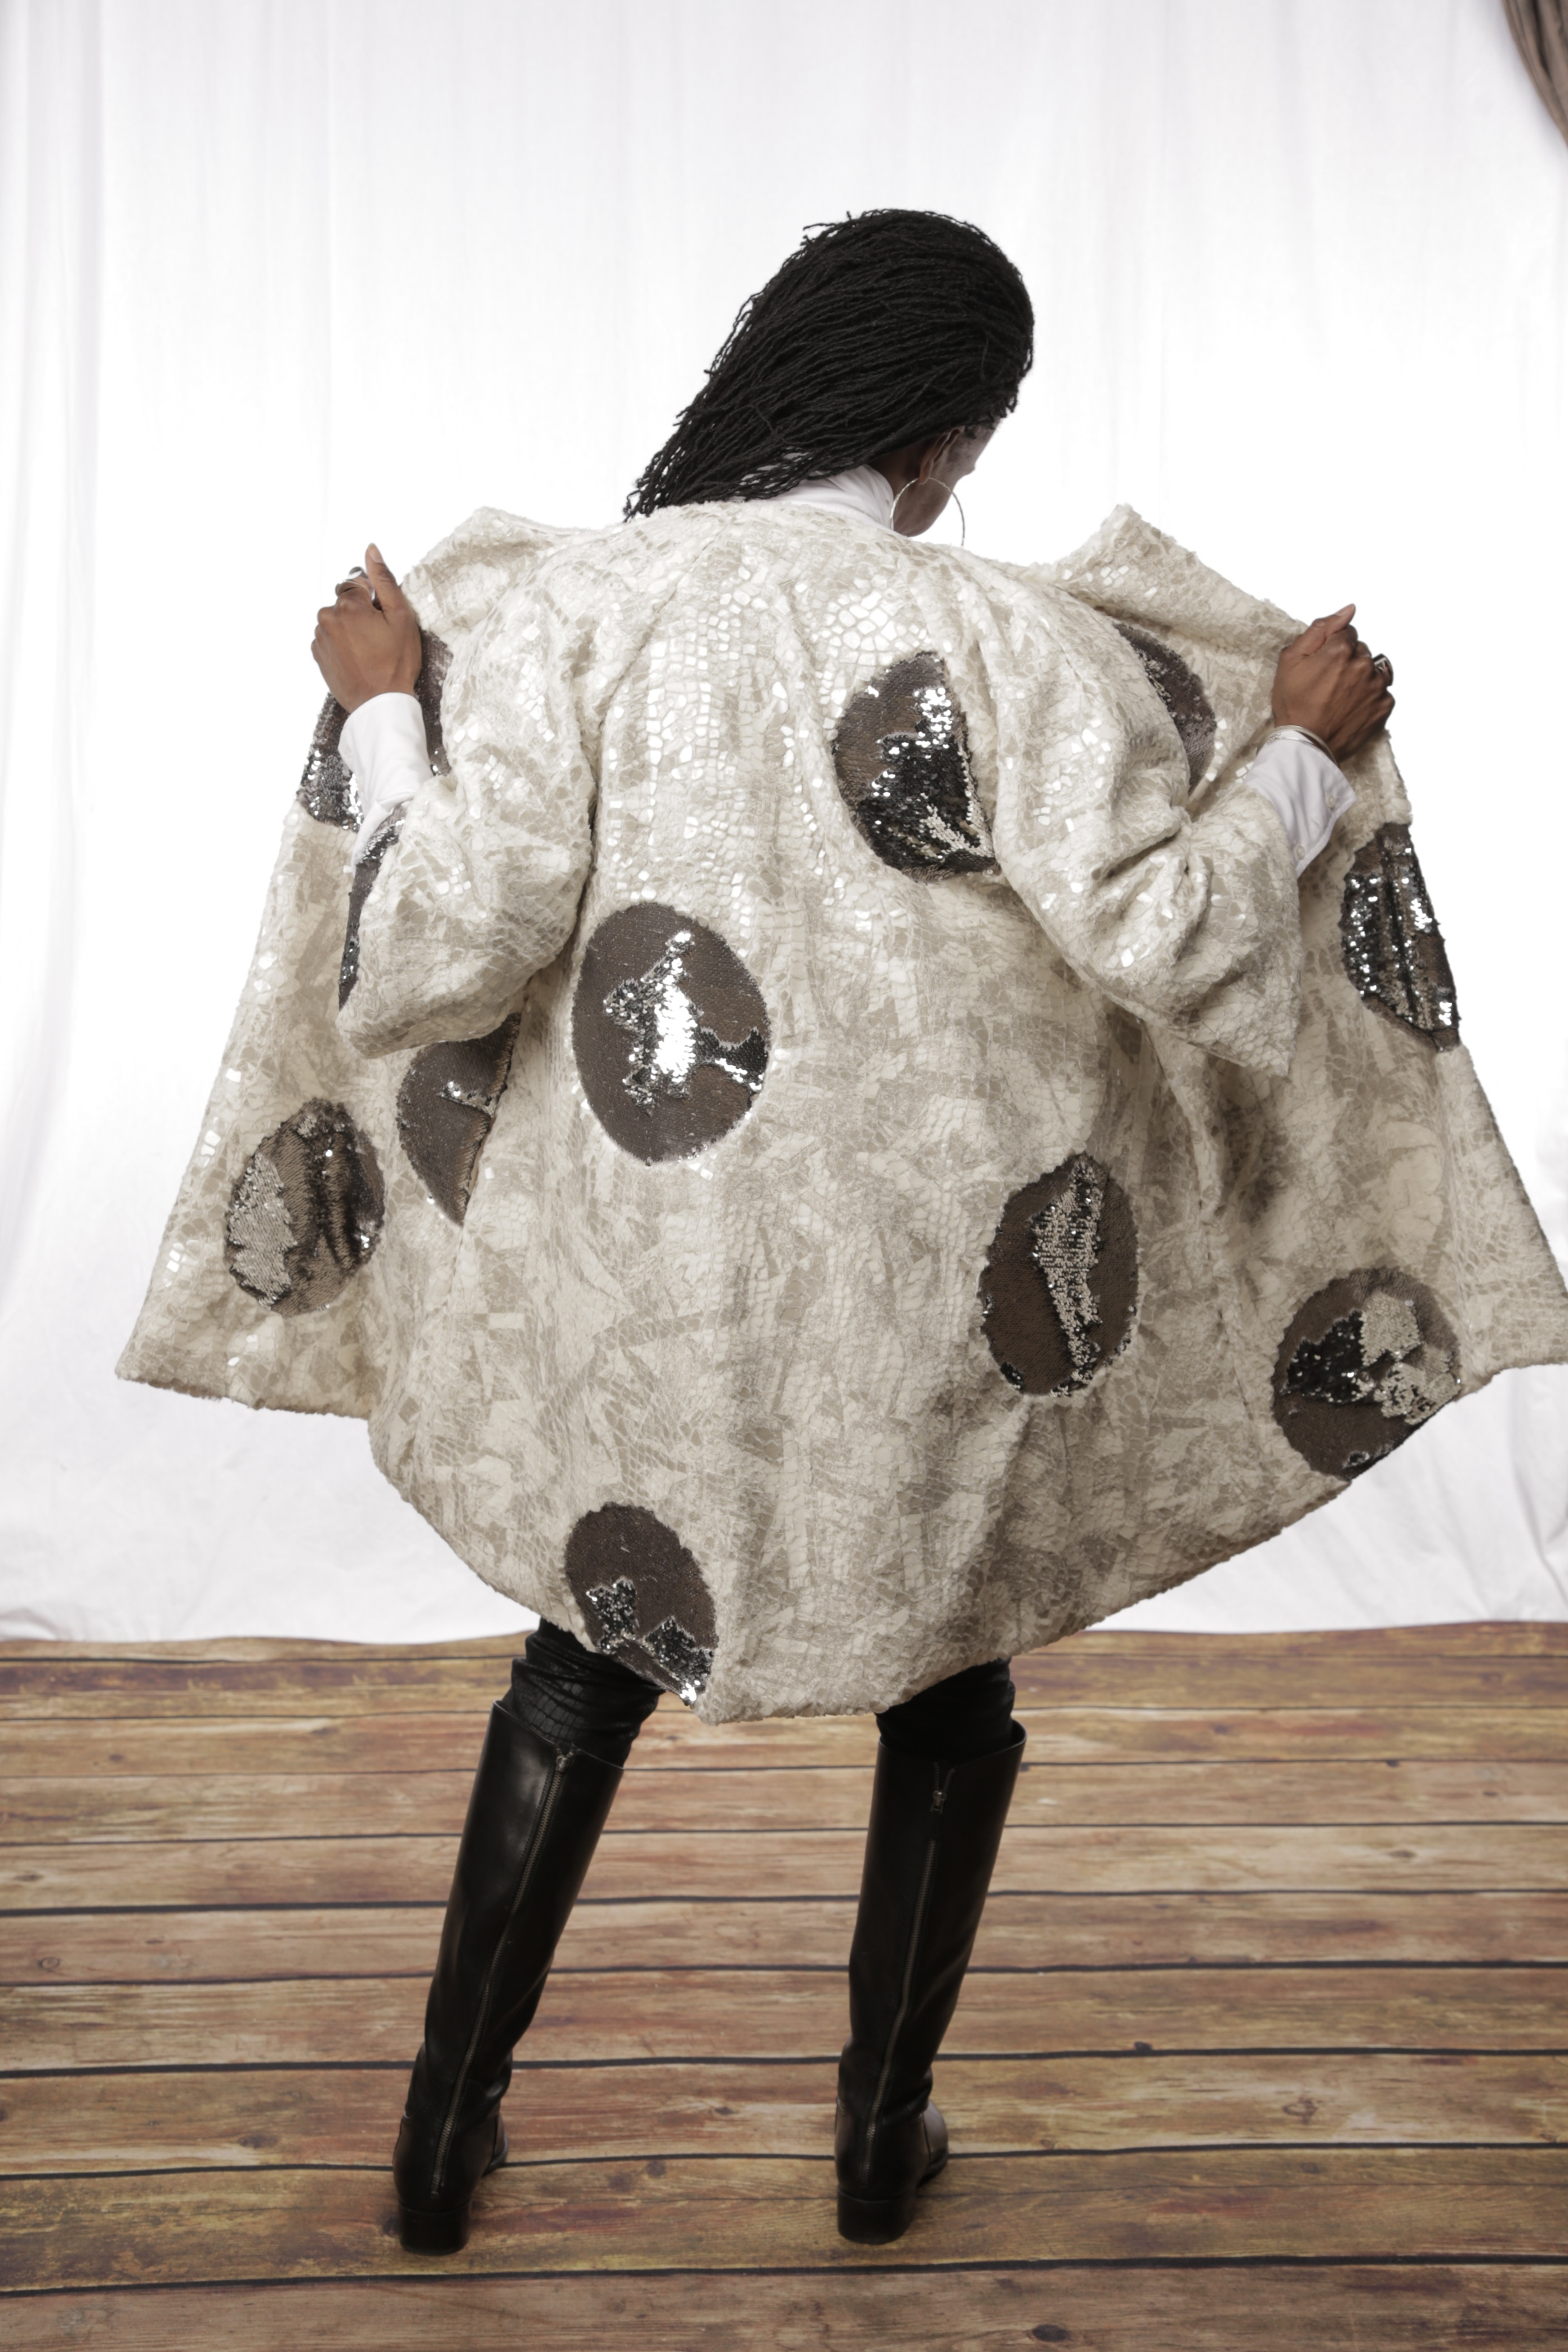 A version of the Re'ChaunStyles Signature Orb Jacket, photo by Jim O'Keefe